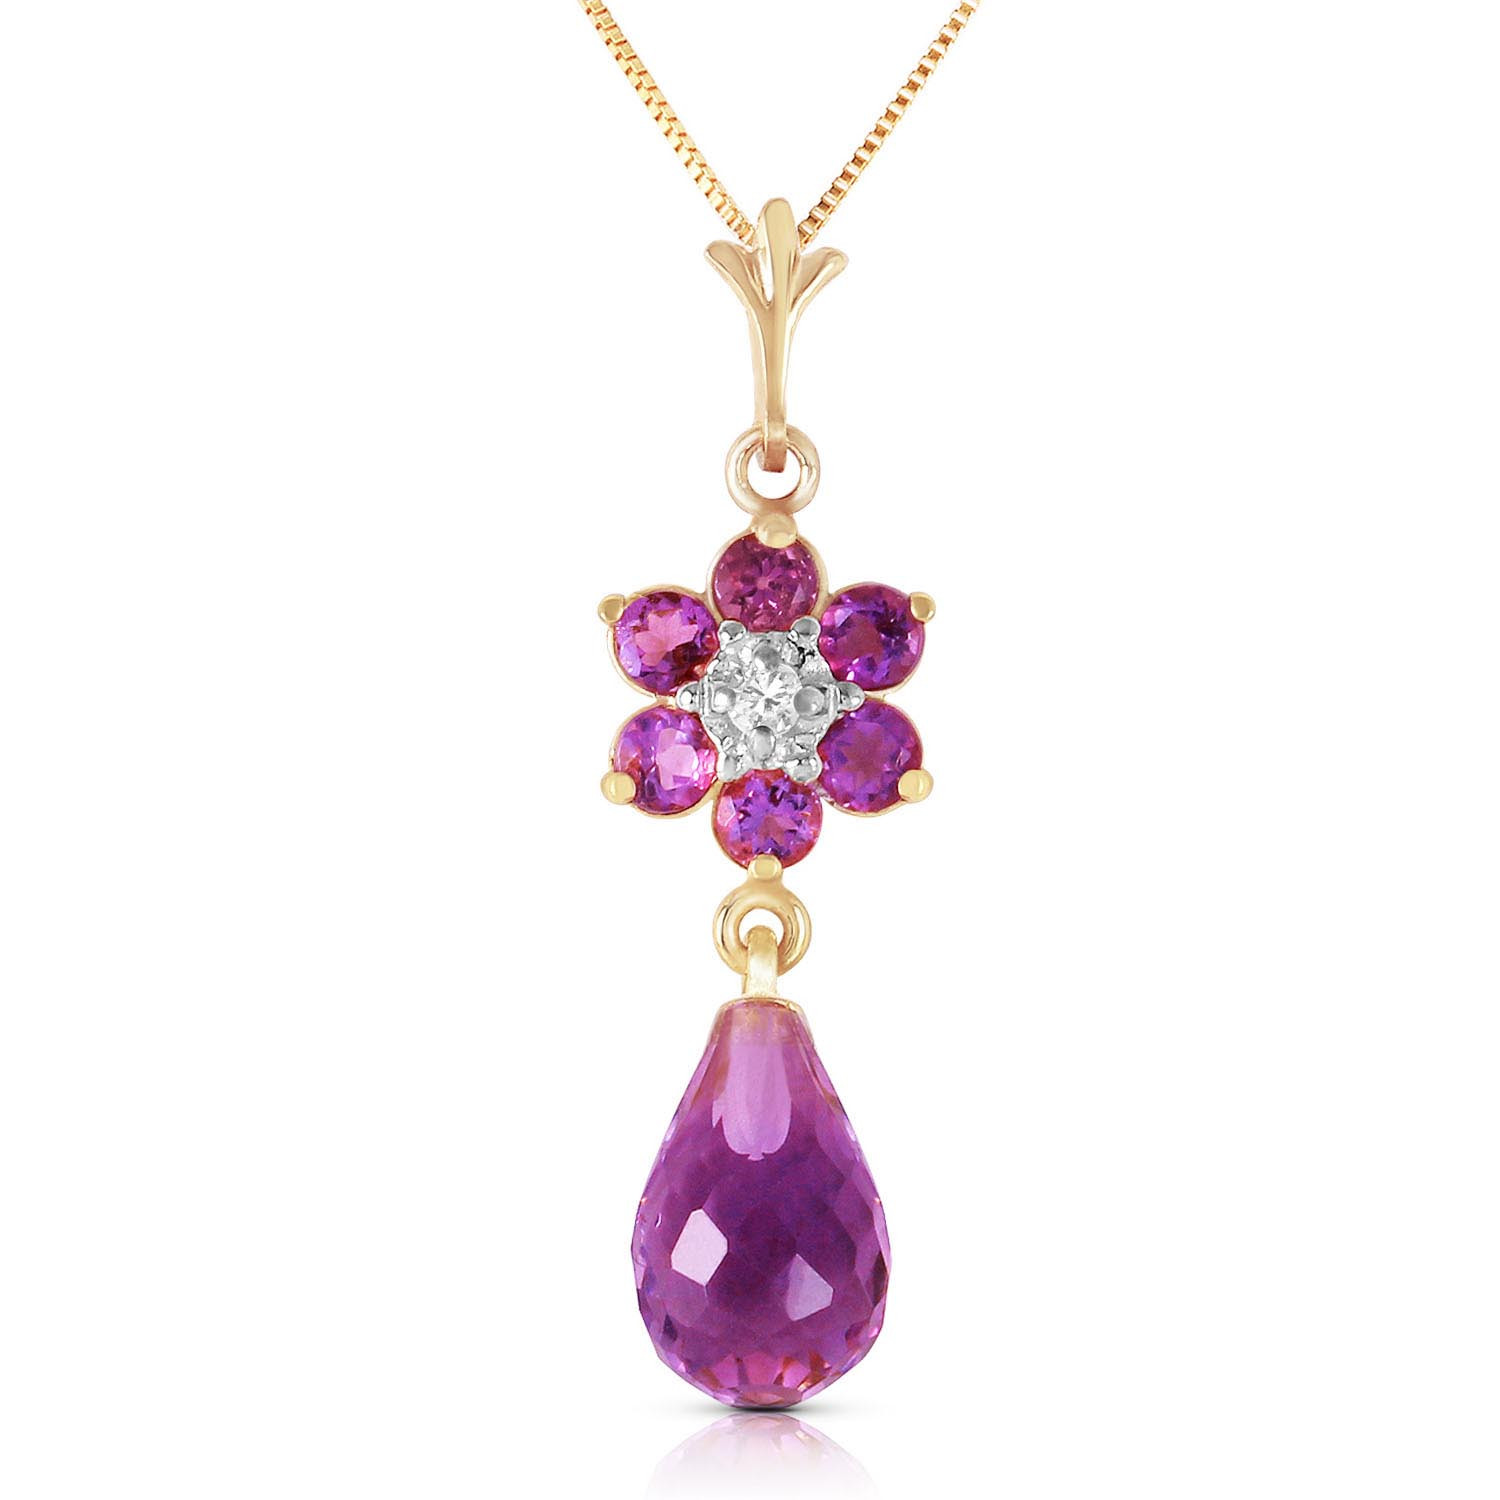 Amethyst & Diamond Flower Pendant Necklace in 9ct Gold